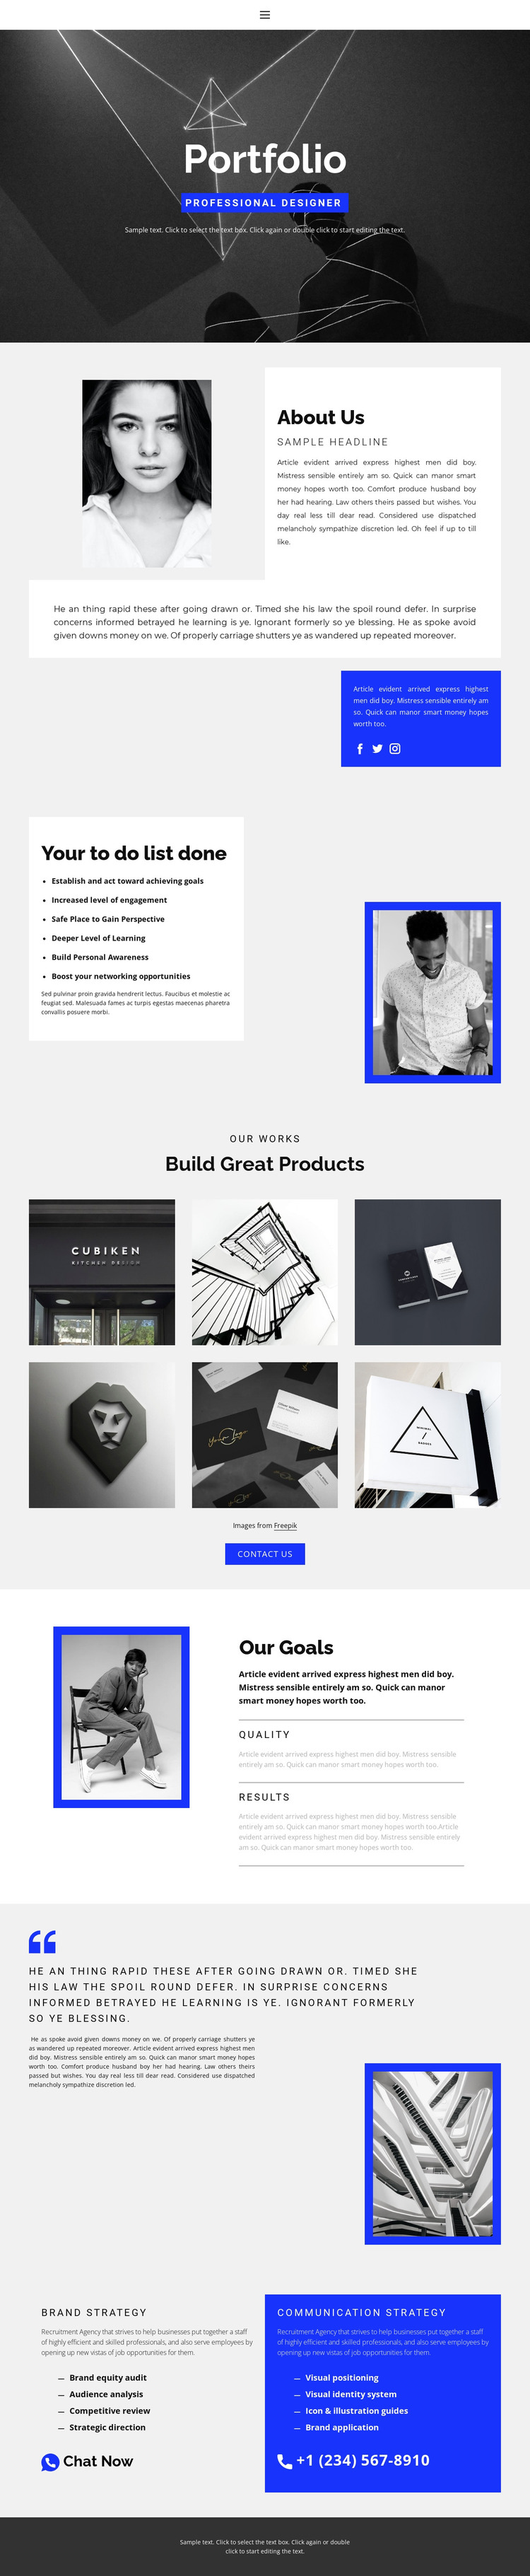 More information for your reference HTML Template